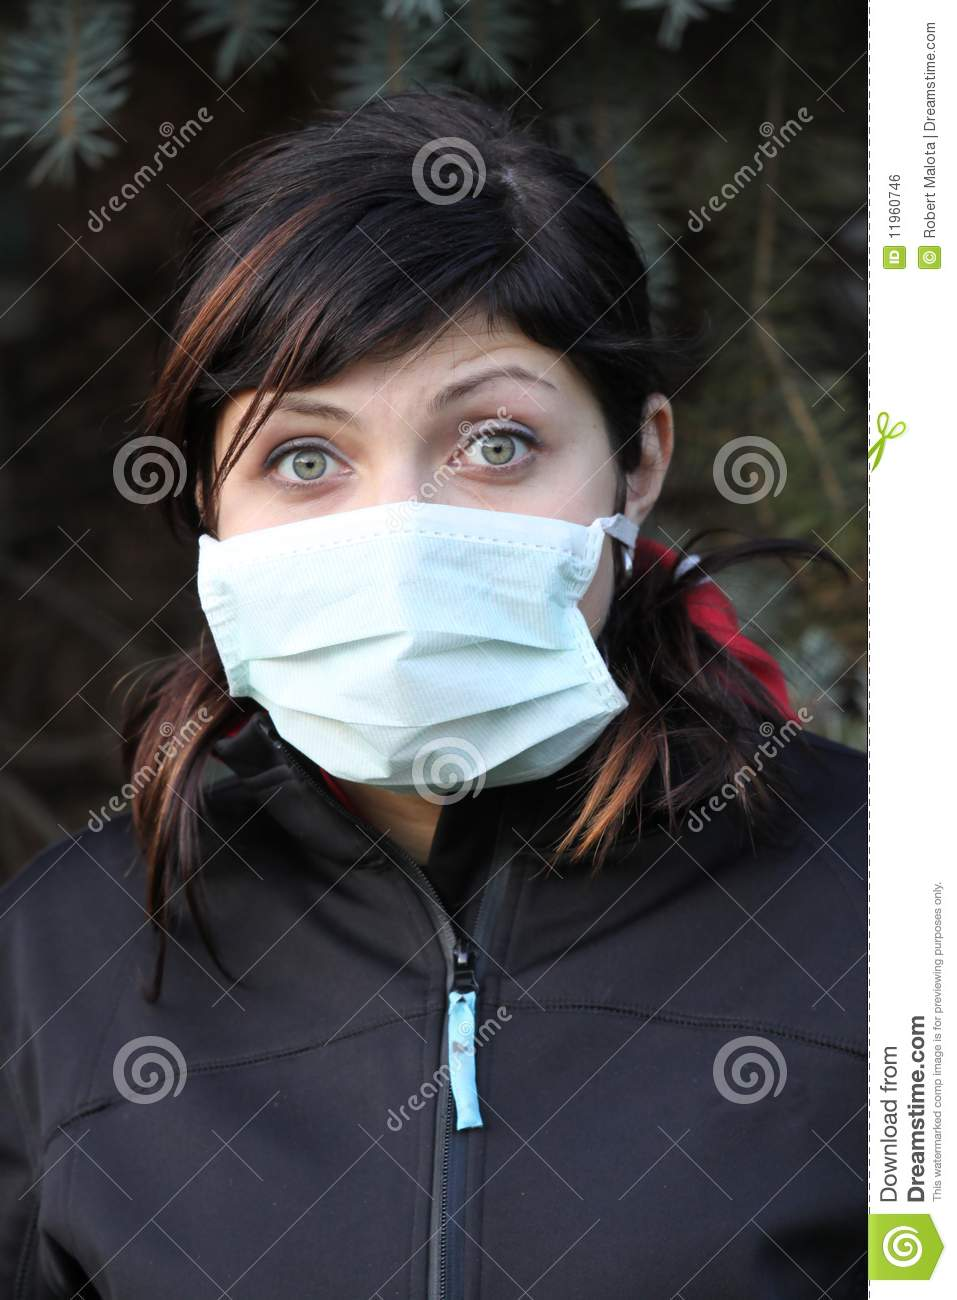 Mouth mask stock photo. Image of disease, health, mouth